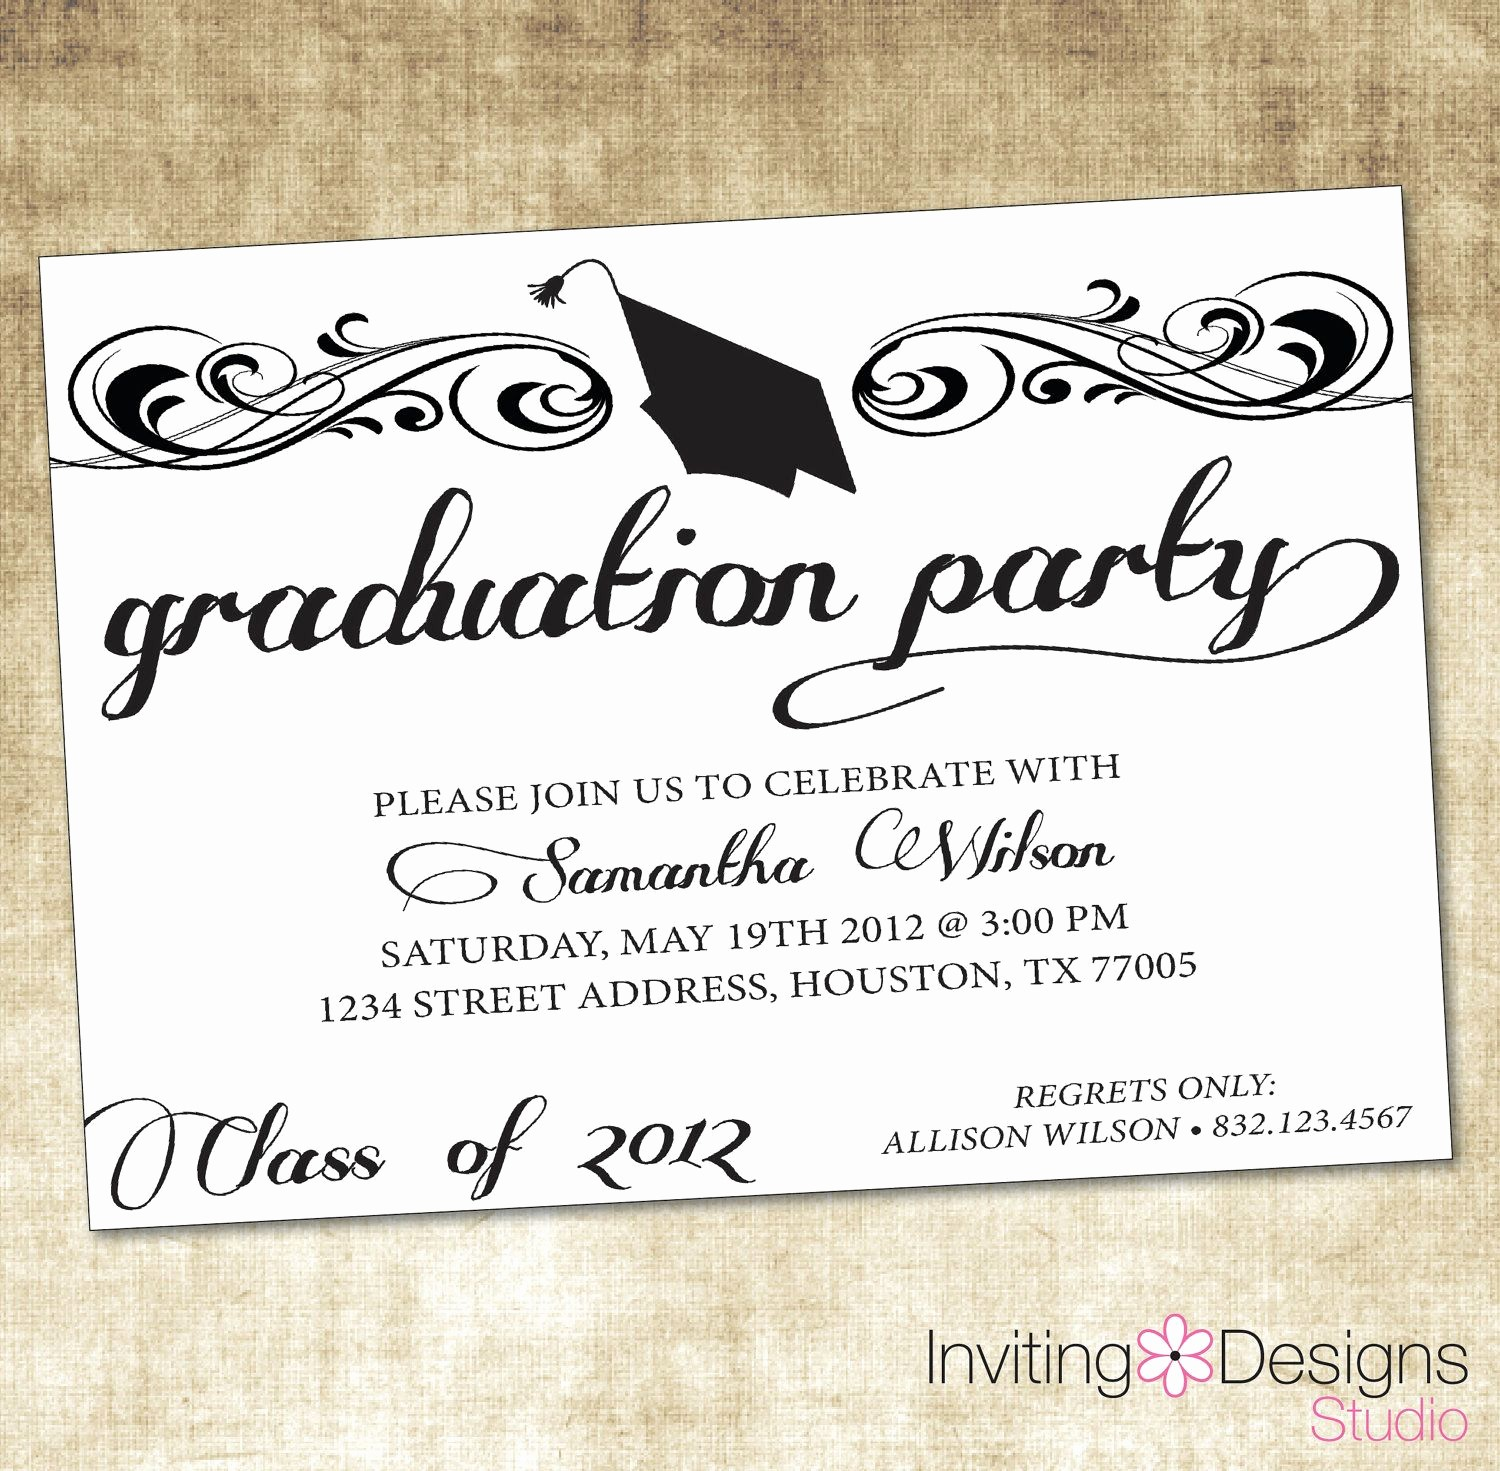 Template for Graduation Party Invitation Fresh Image Result for Graduation Party Invitation Wording Ideas